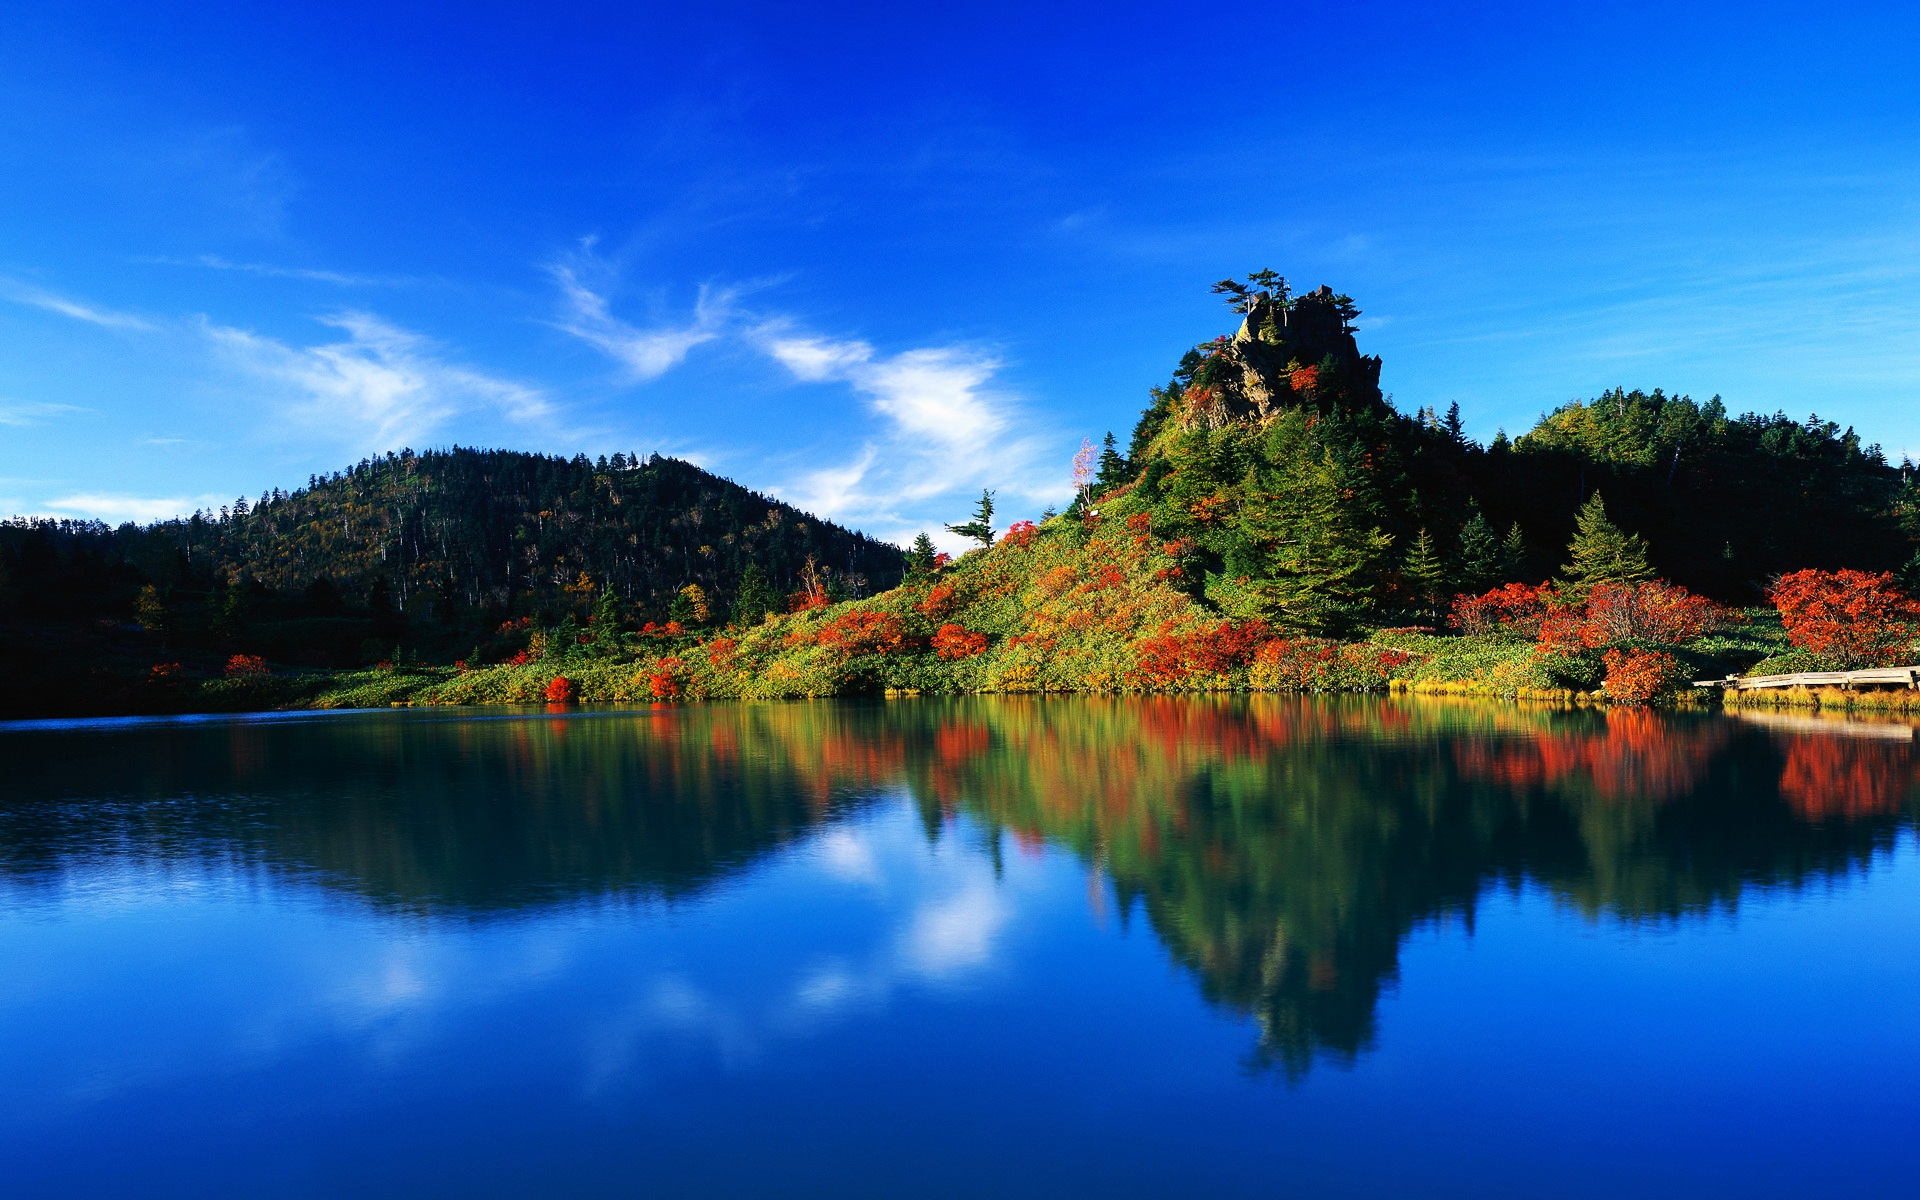 Autumn Reflection Japan Wallpapers HD Wallpapers 1920x1200